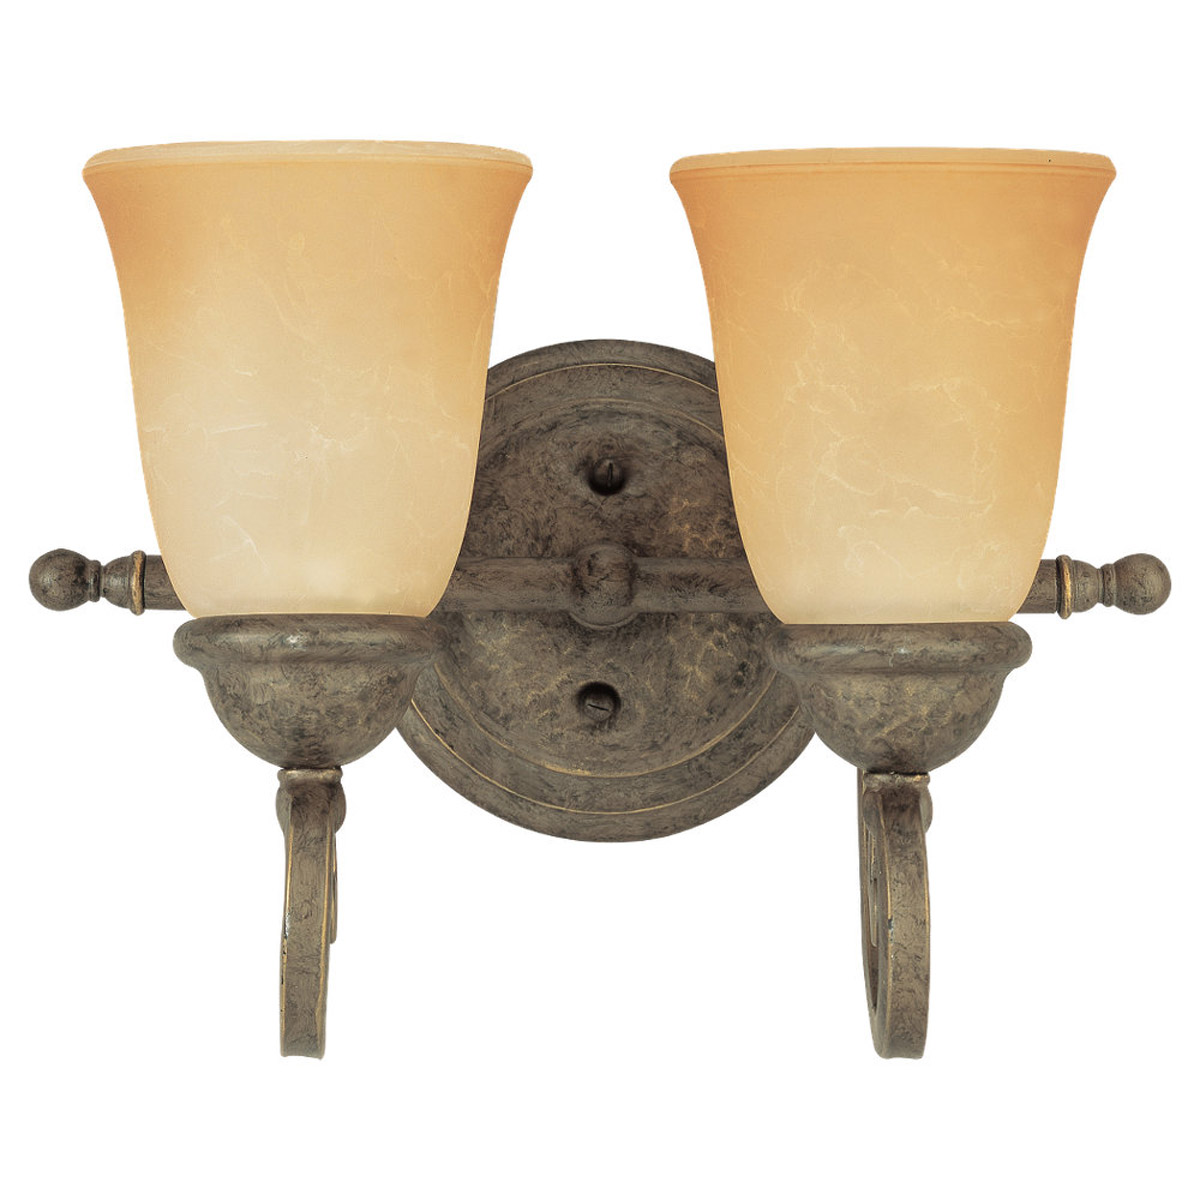 Sea Gull Lighting Brandywine 2 Light Bath Vanity in Antique Bronze 44430-71